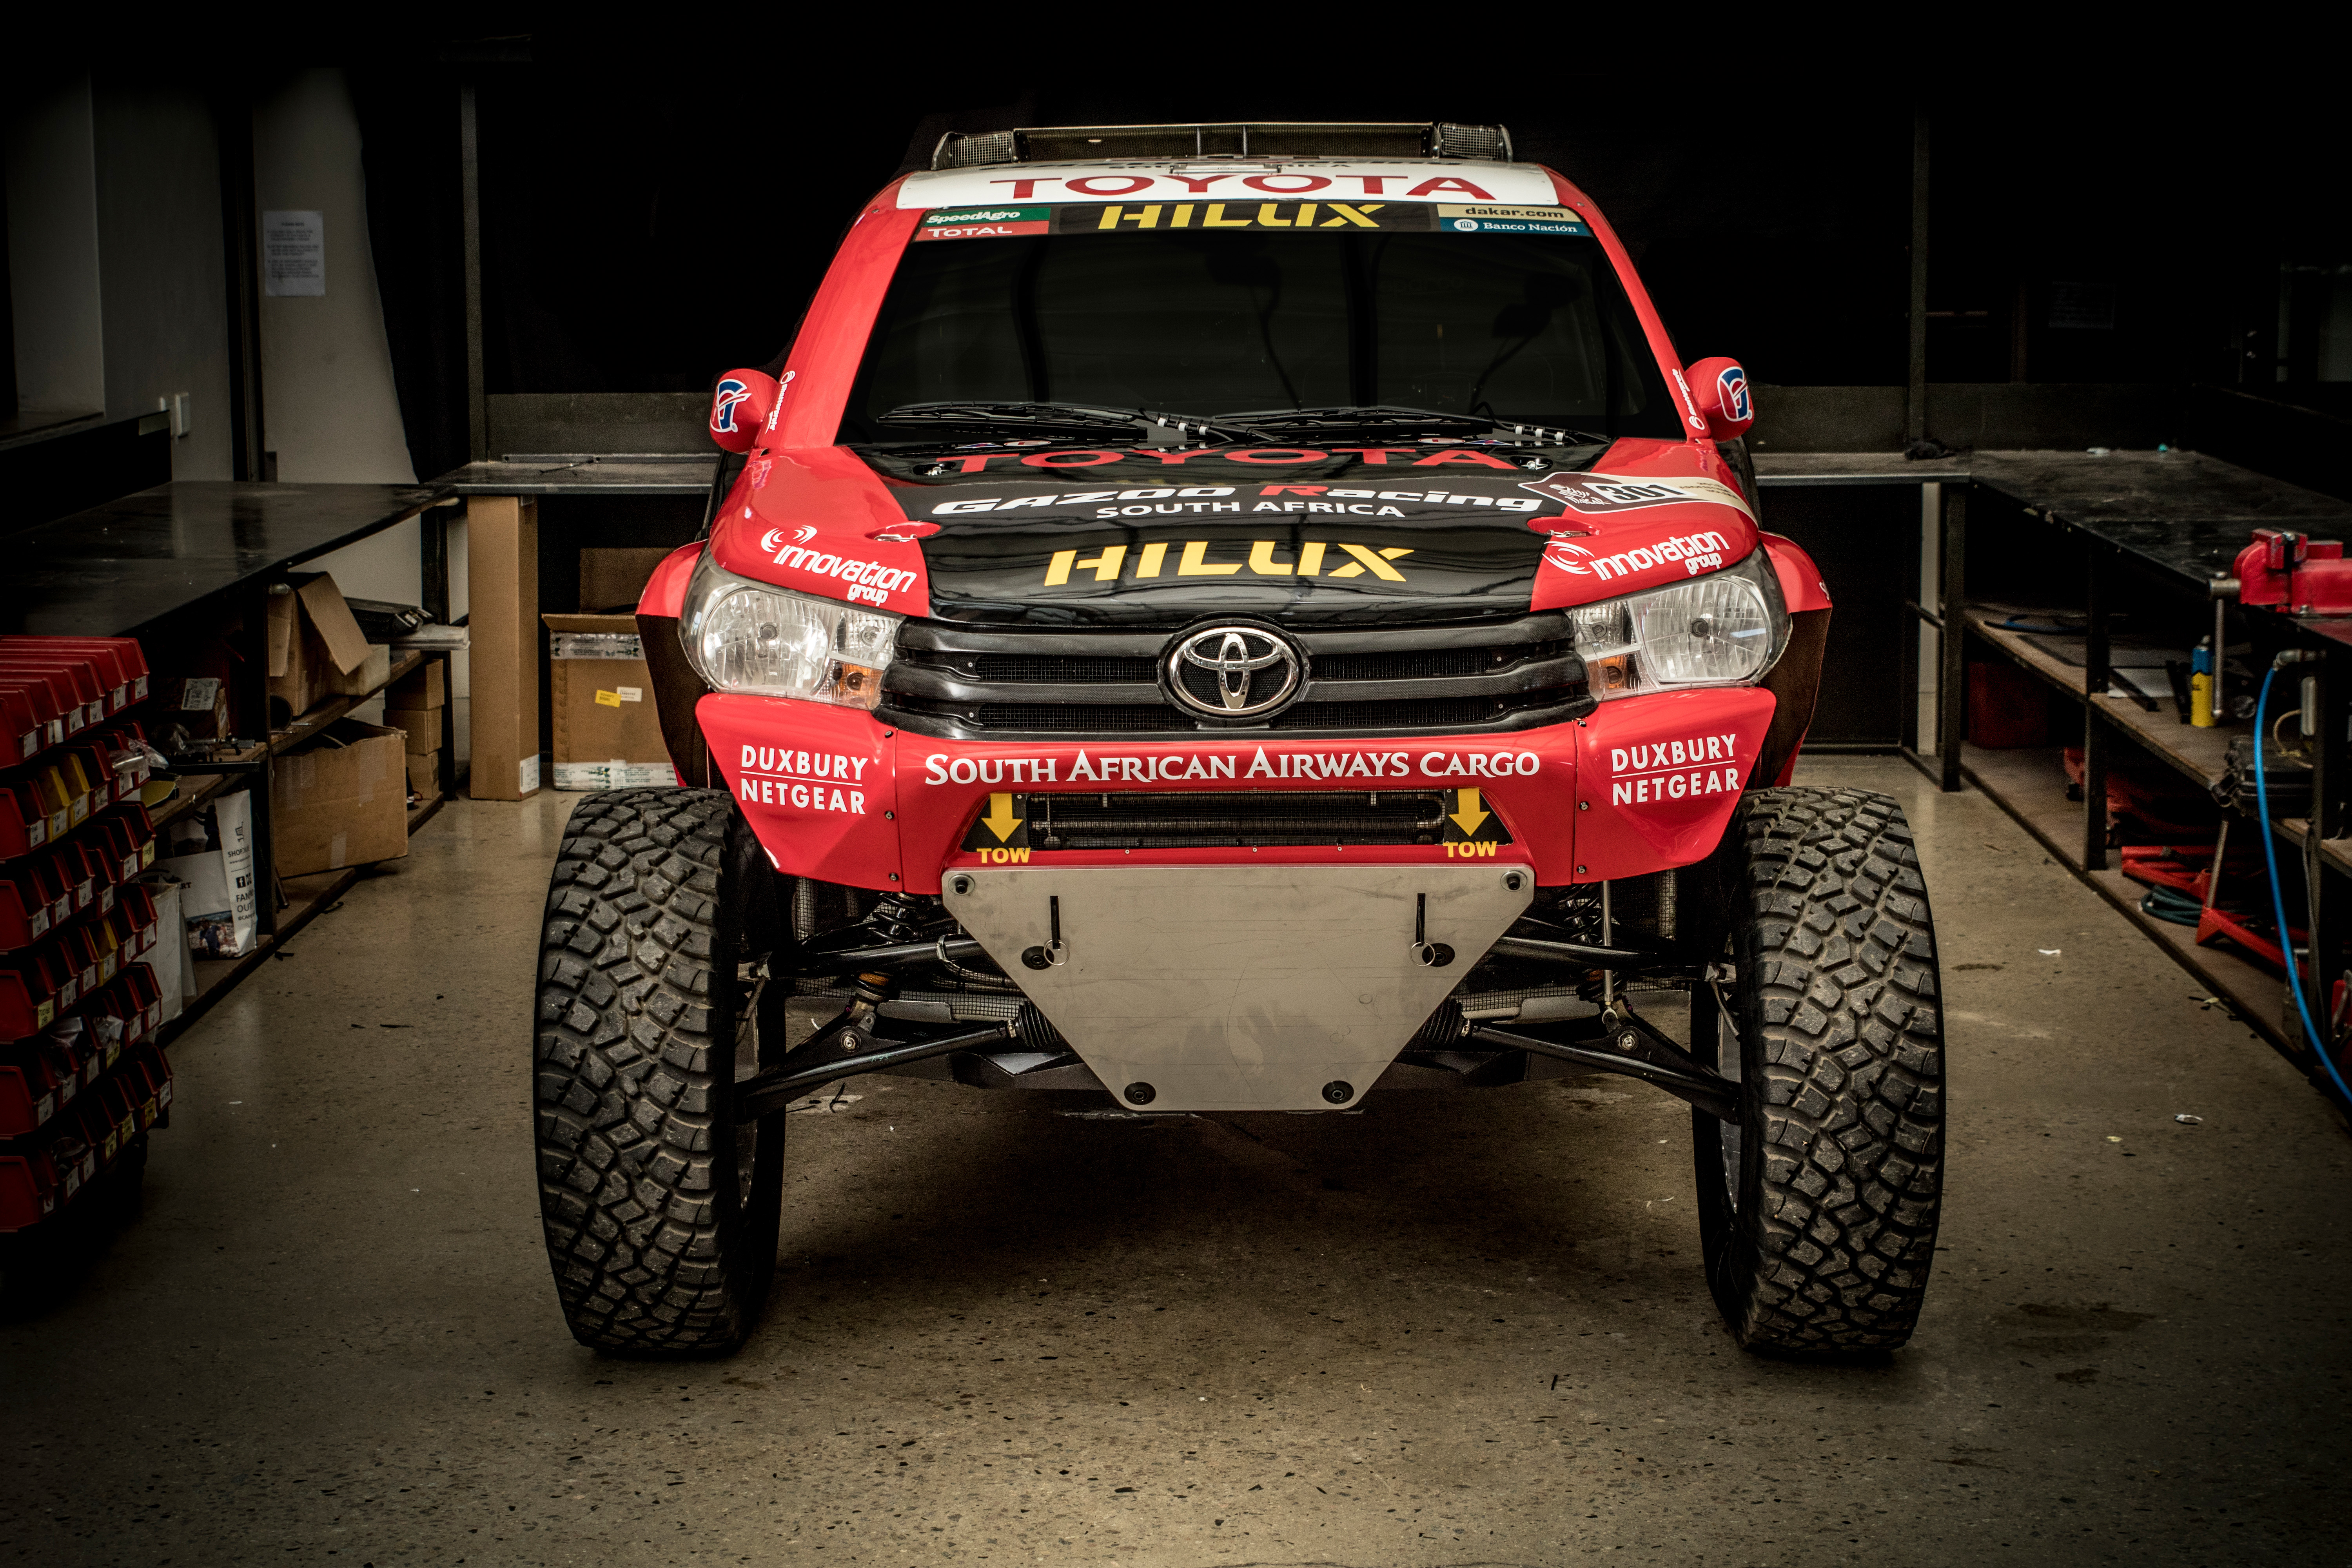 toyota gazoo racing unveil 2017 dakar rally hilux evo racer 5 0 litre v8 engine 940 mm wheels. Black Bedroom Furniture Sets. Home Design Ideas